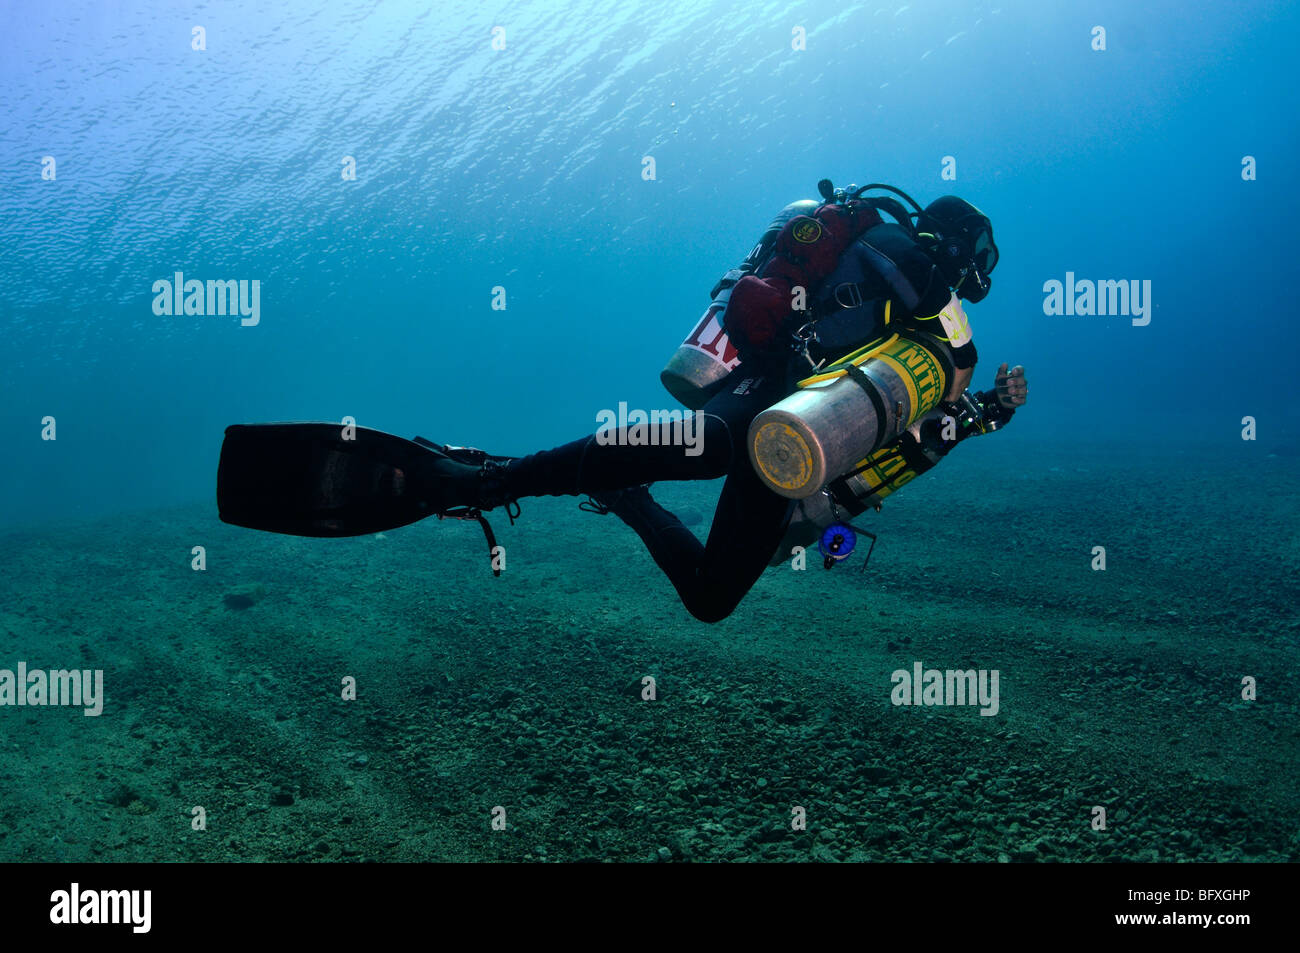 Technical scuba diver with multiple cylinders in shallow water, 'Red Sea' - Stock Image